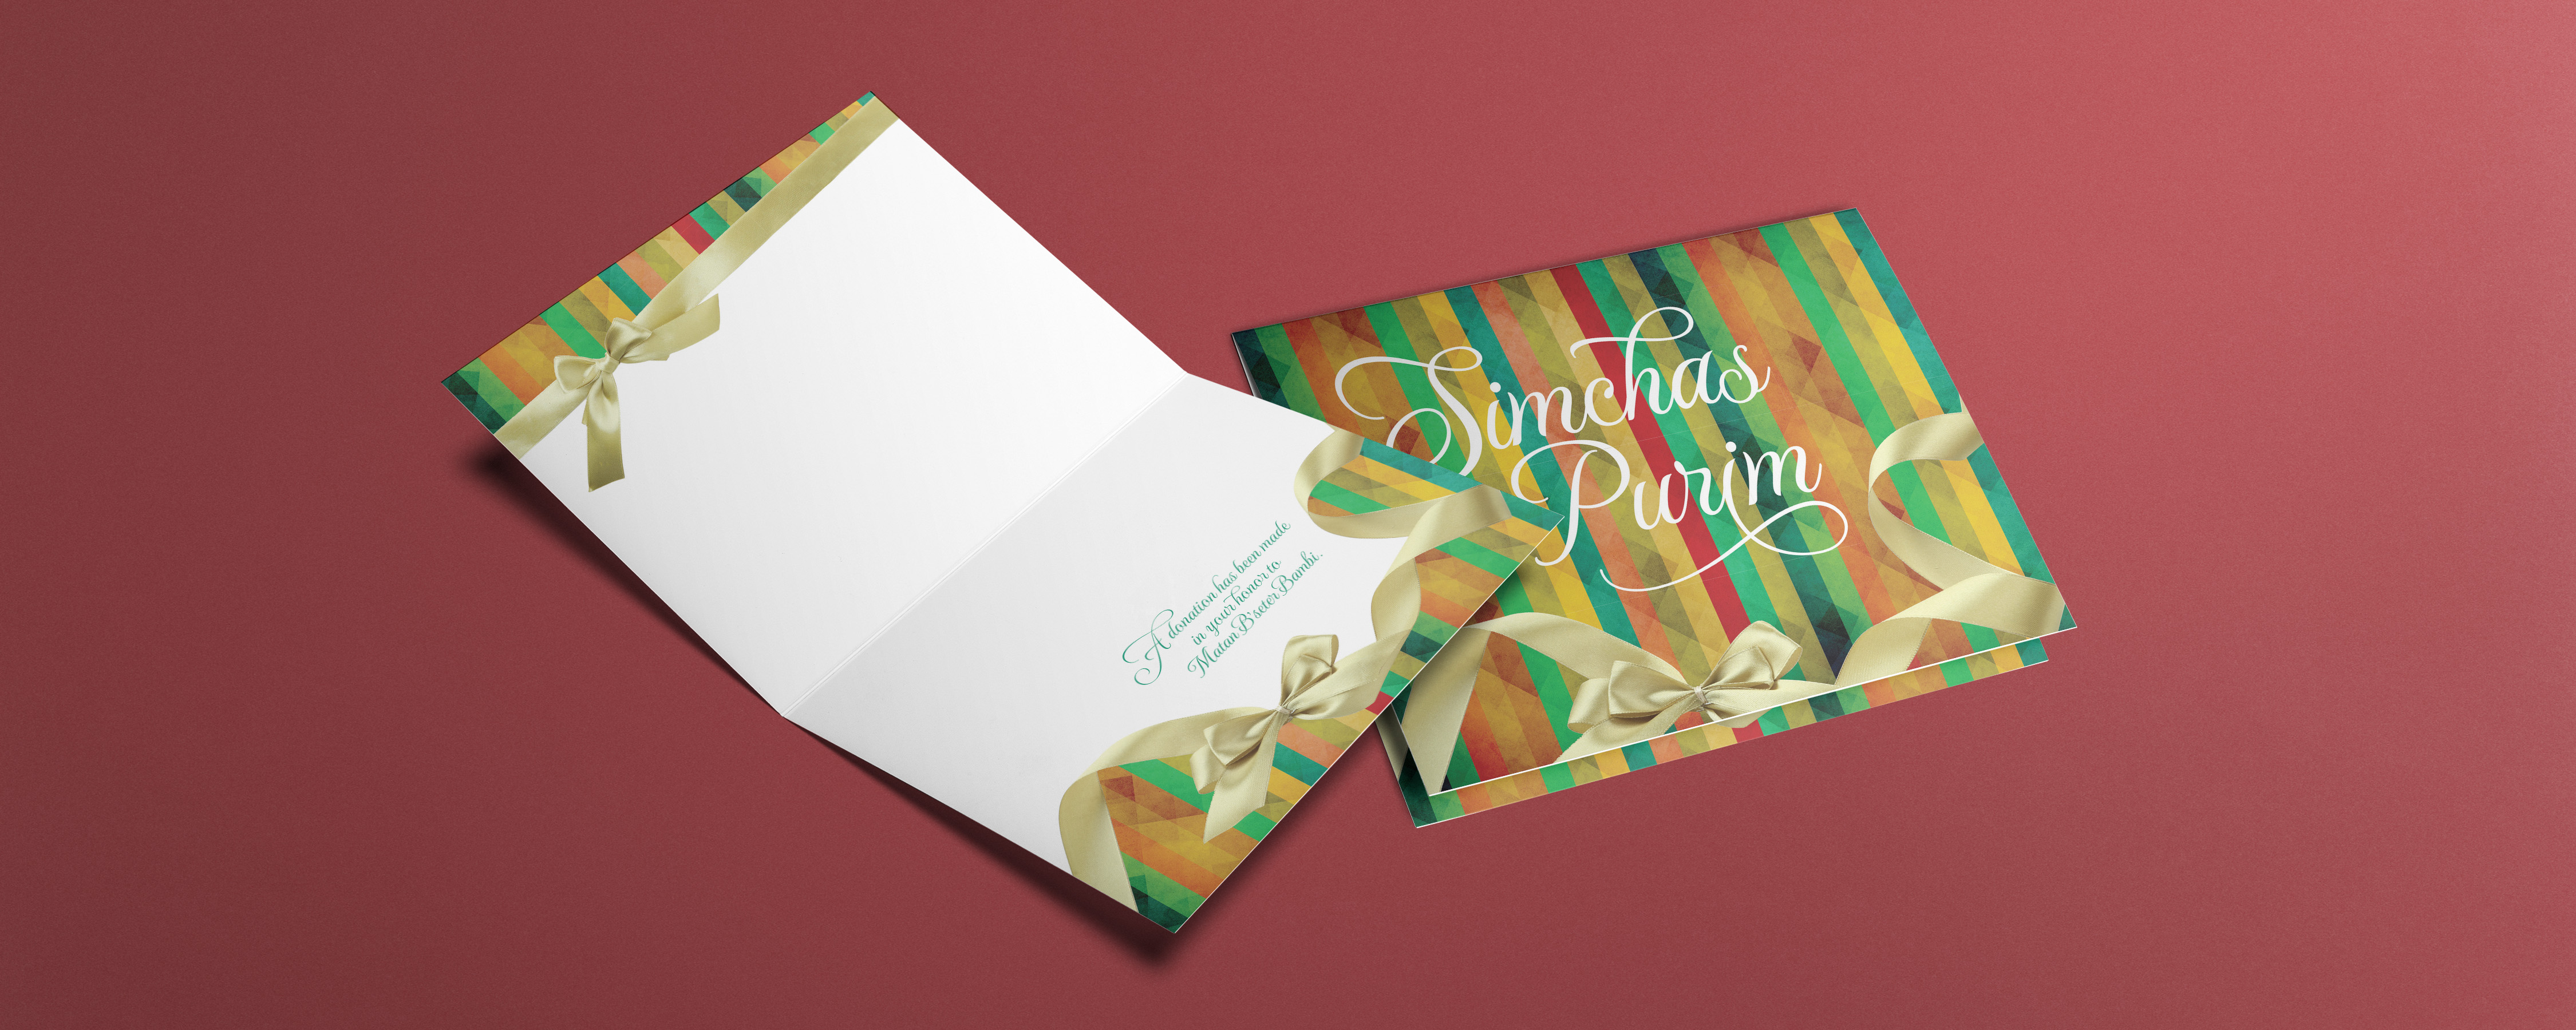 Purim Card - Design 1